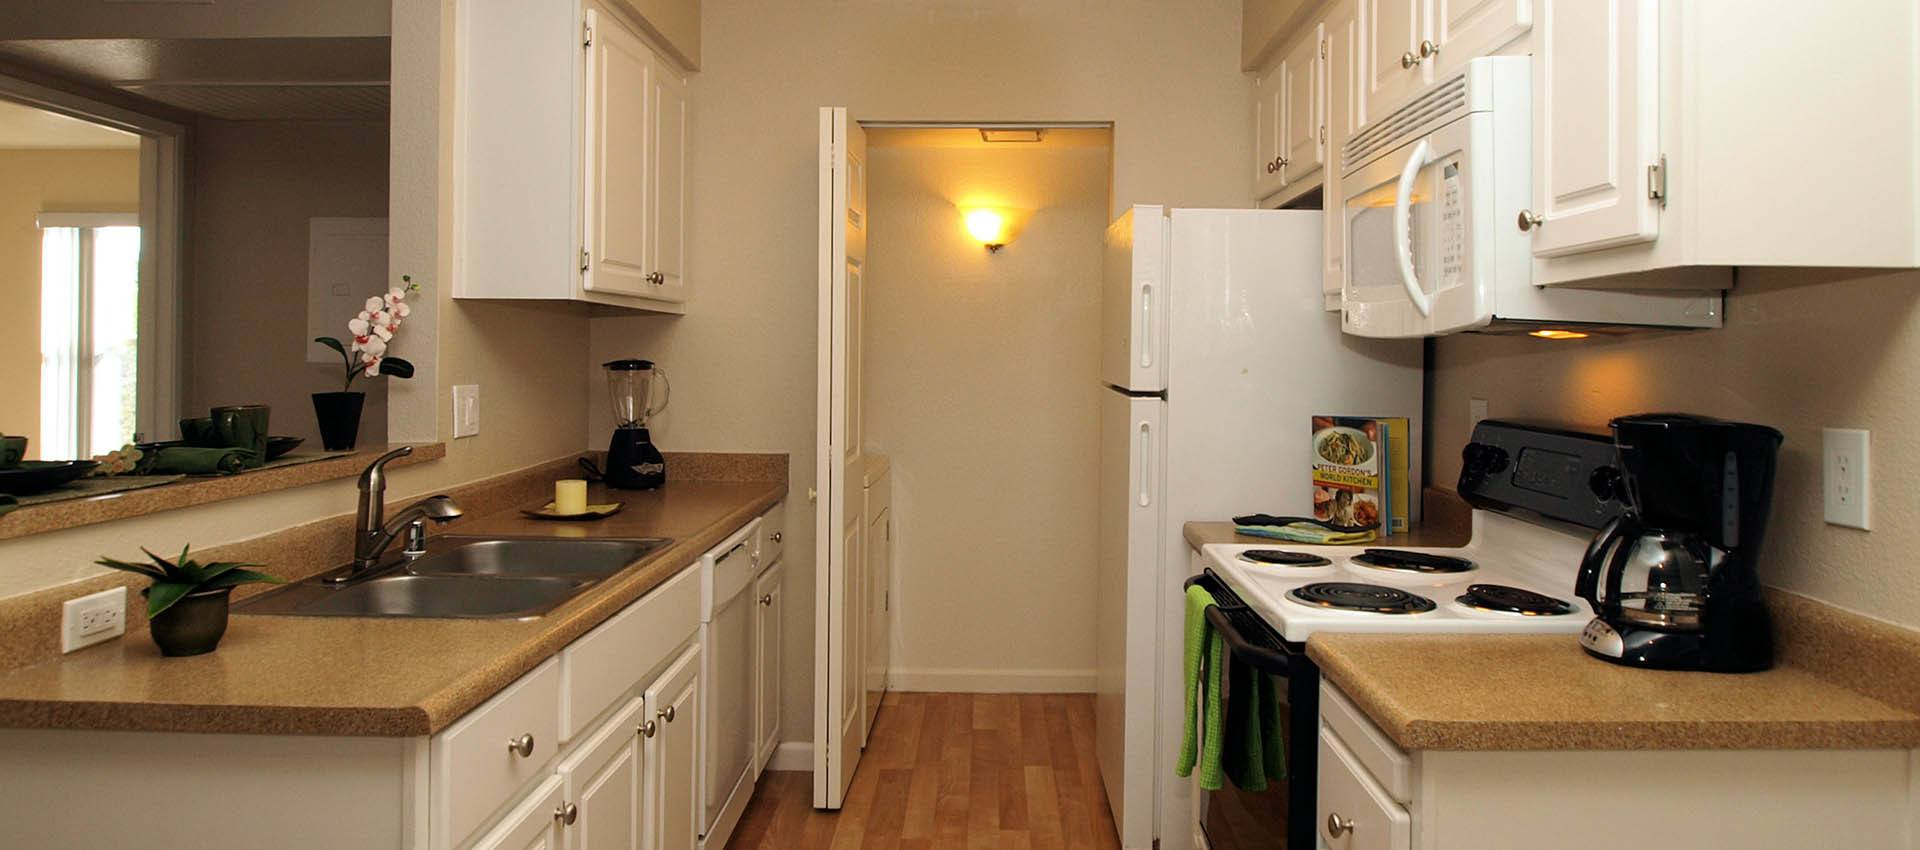 Kitchen With White Cabinets at Sterling Heights Apartment Homes in Benicia